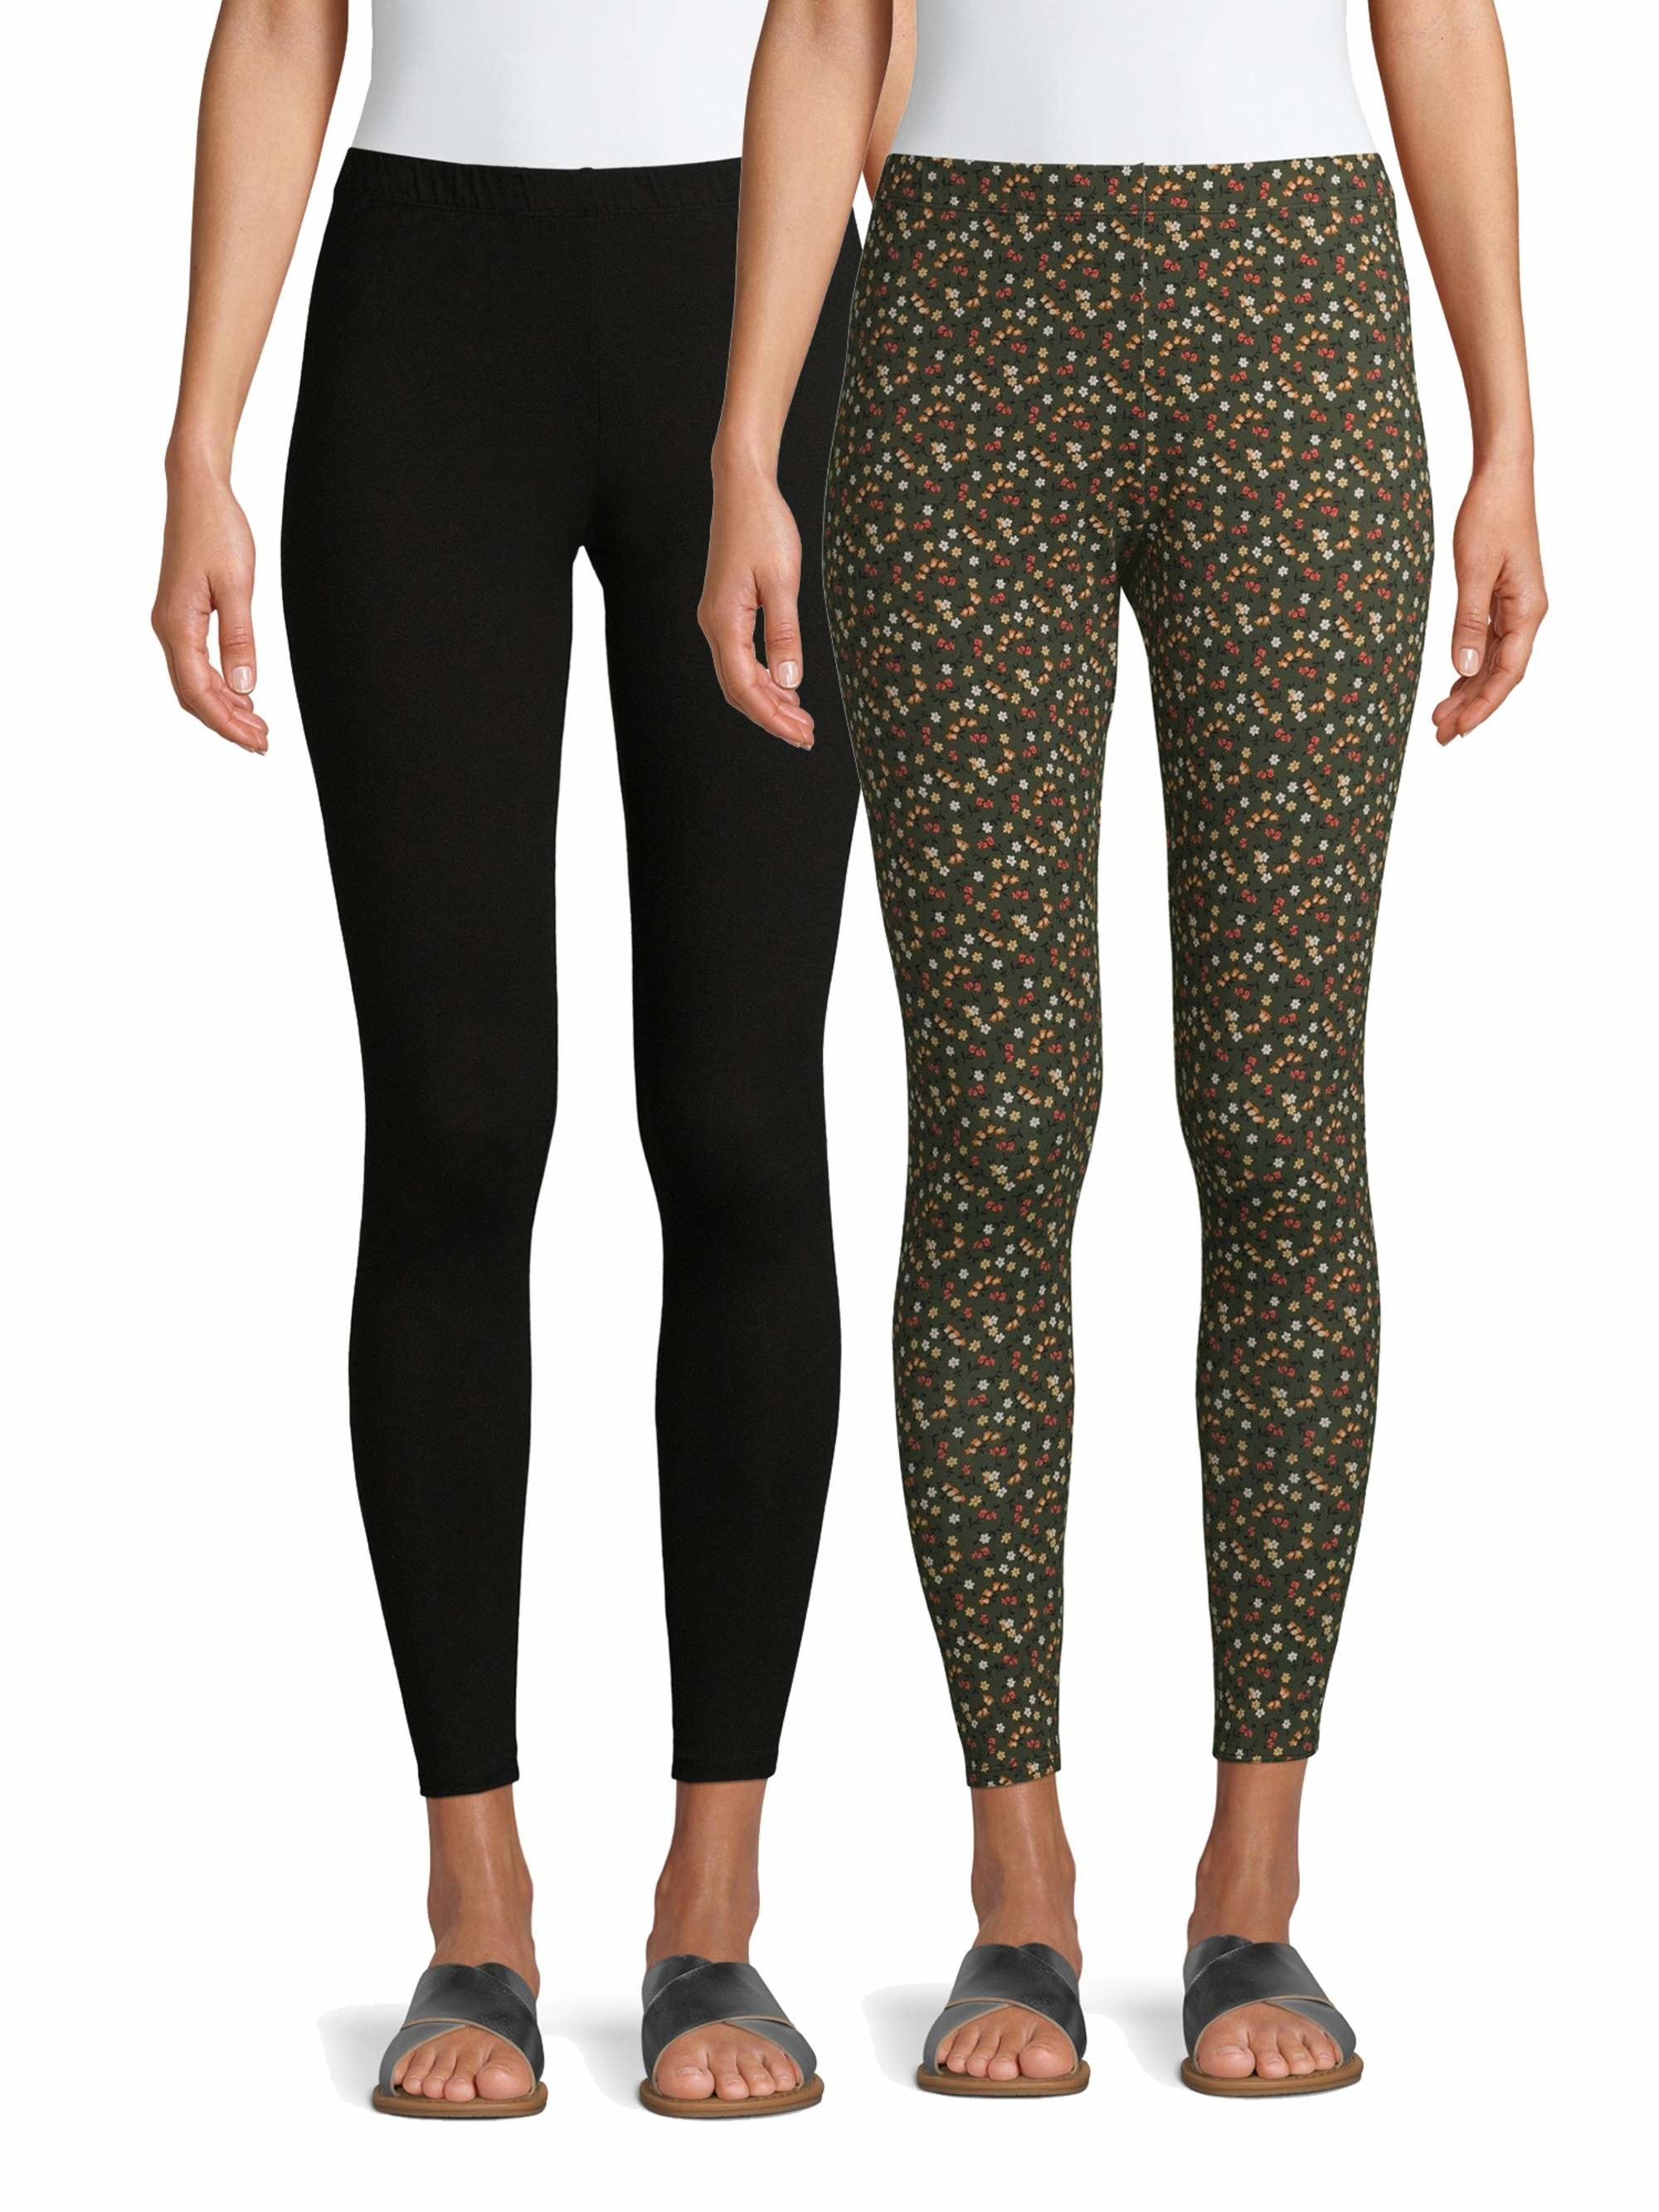 Models wears the two leggings, one green and yellow floral pattern and the other black